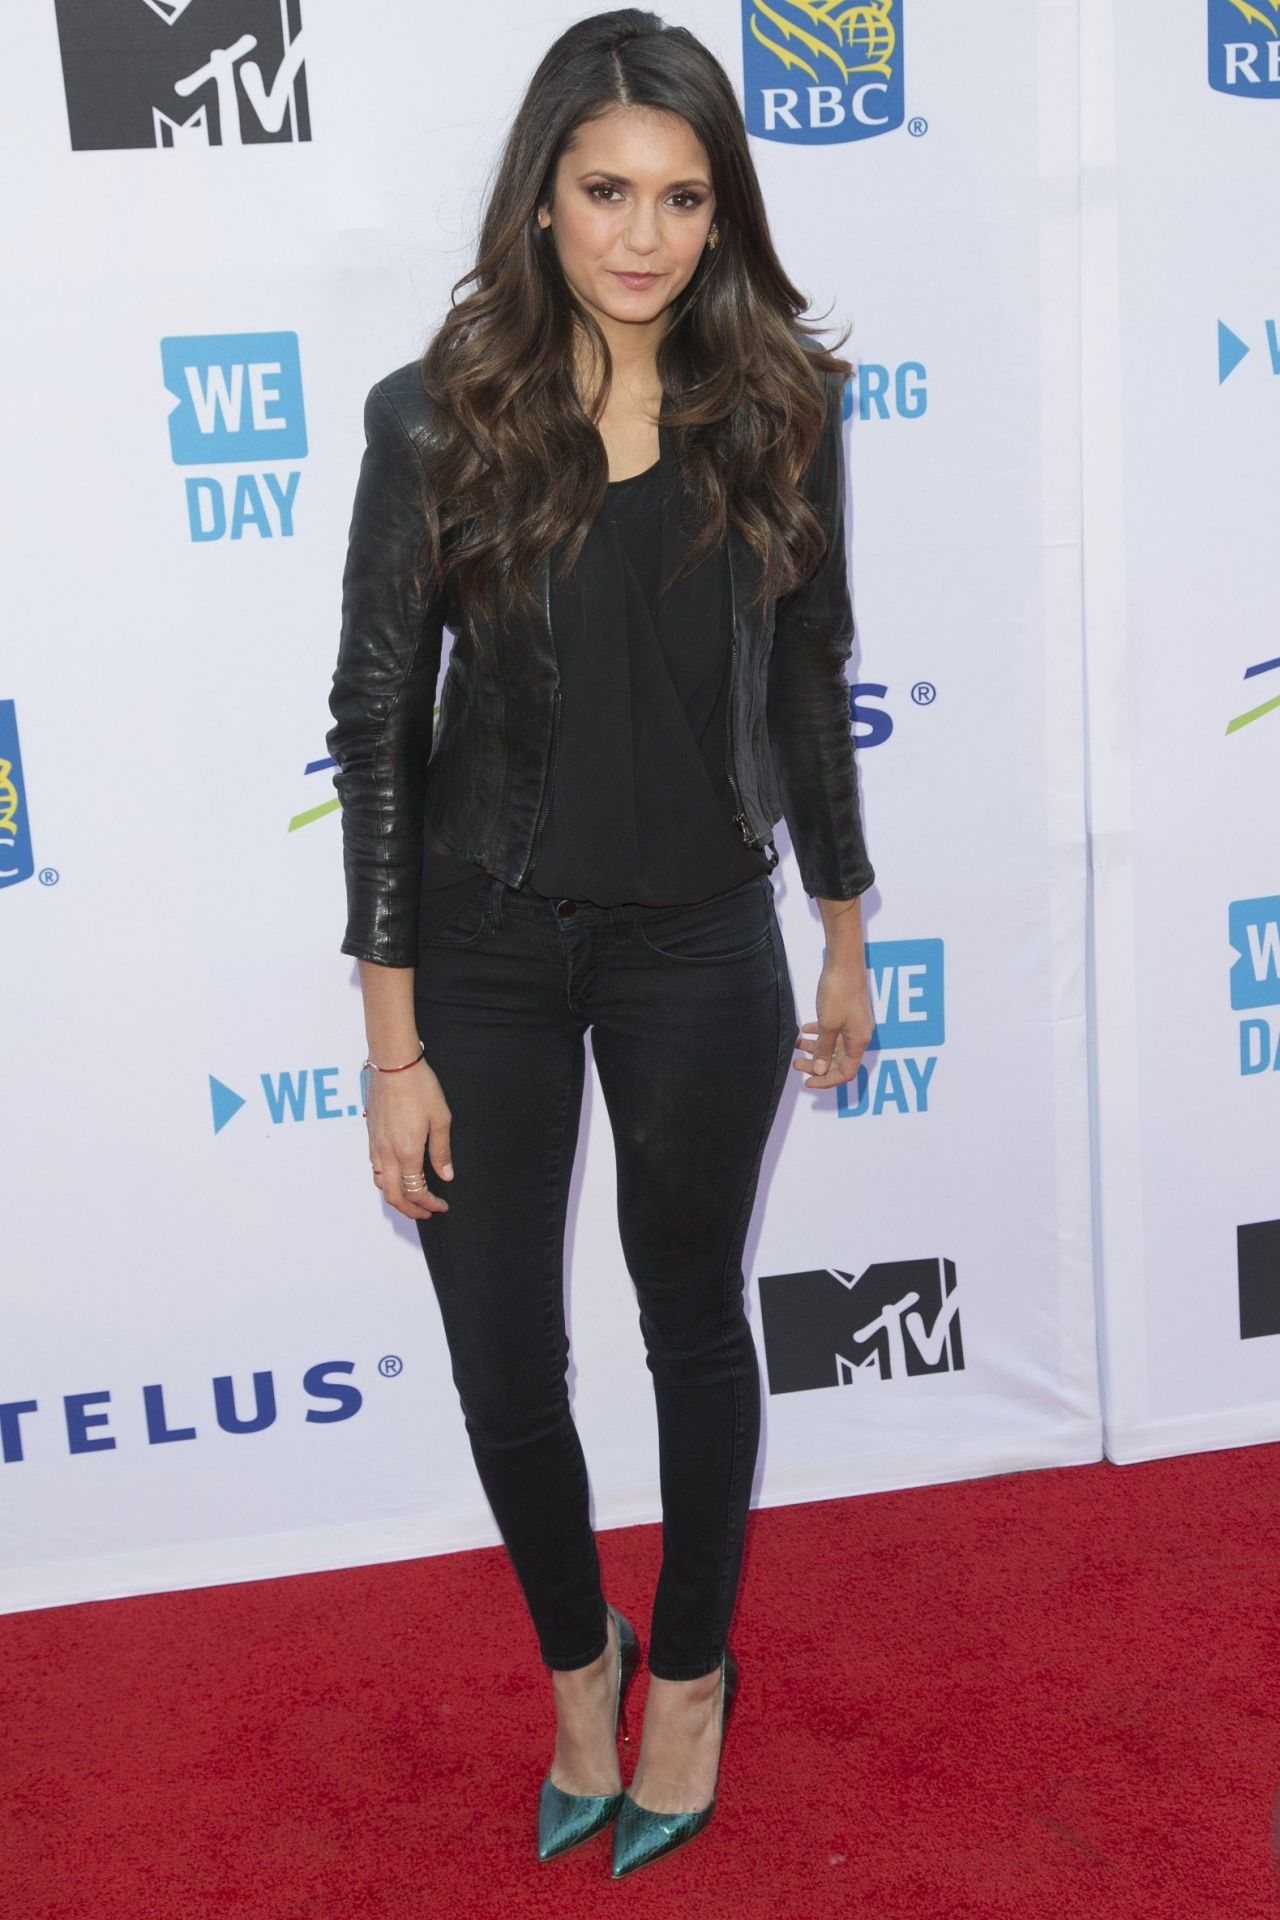 Nina Dobrev We Day Toronto 2015 In Toronto